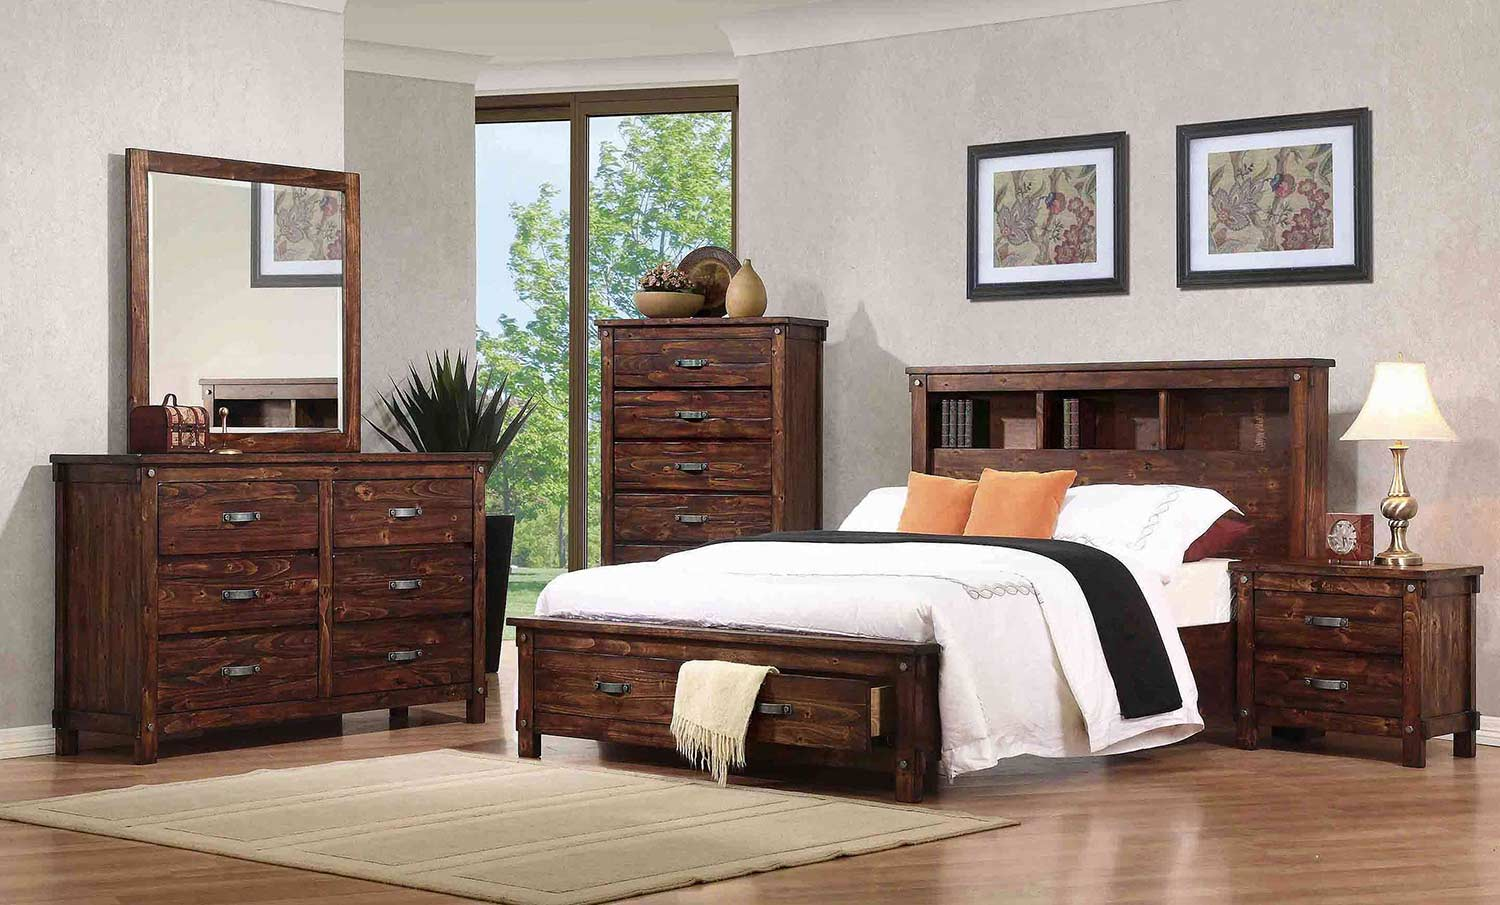 Coaster Noble Bookcase Platform Storage Bedroom Set Rustic Oak B219 2 BEDRO